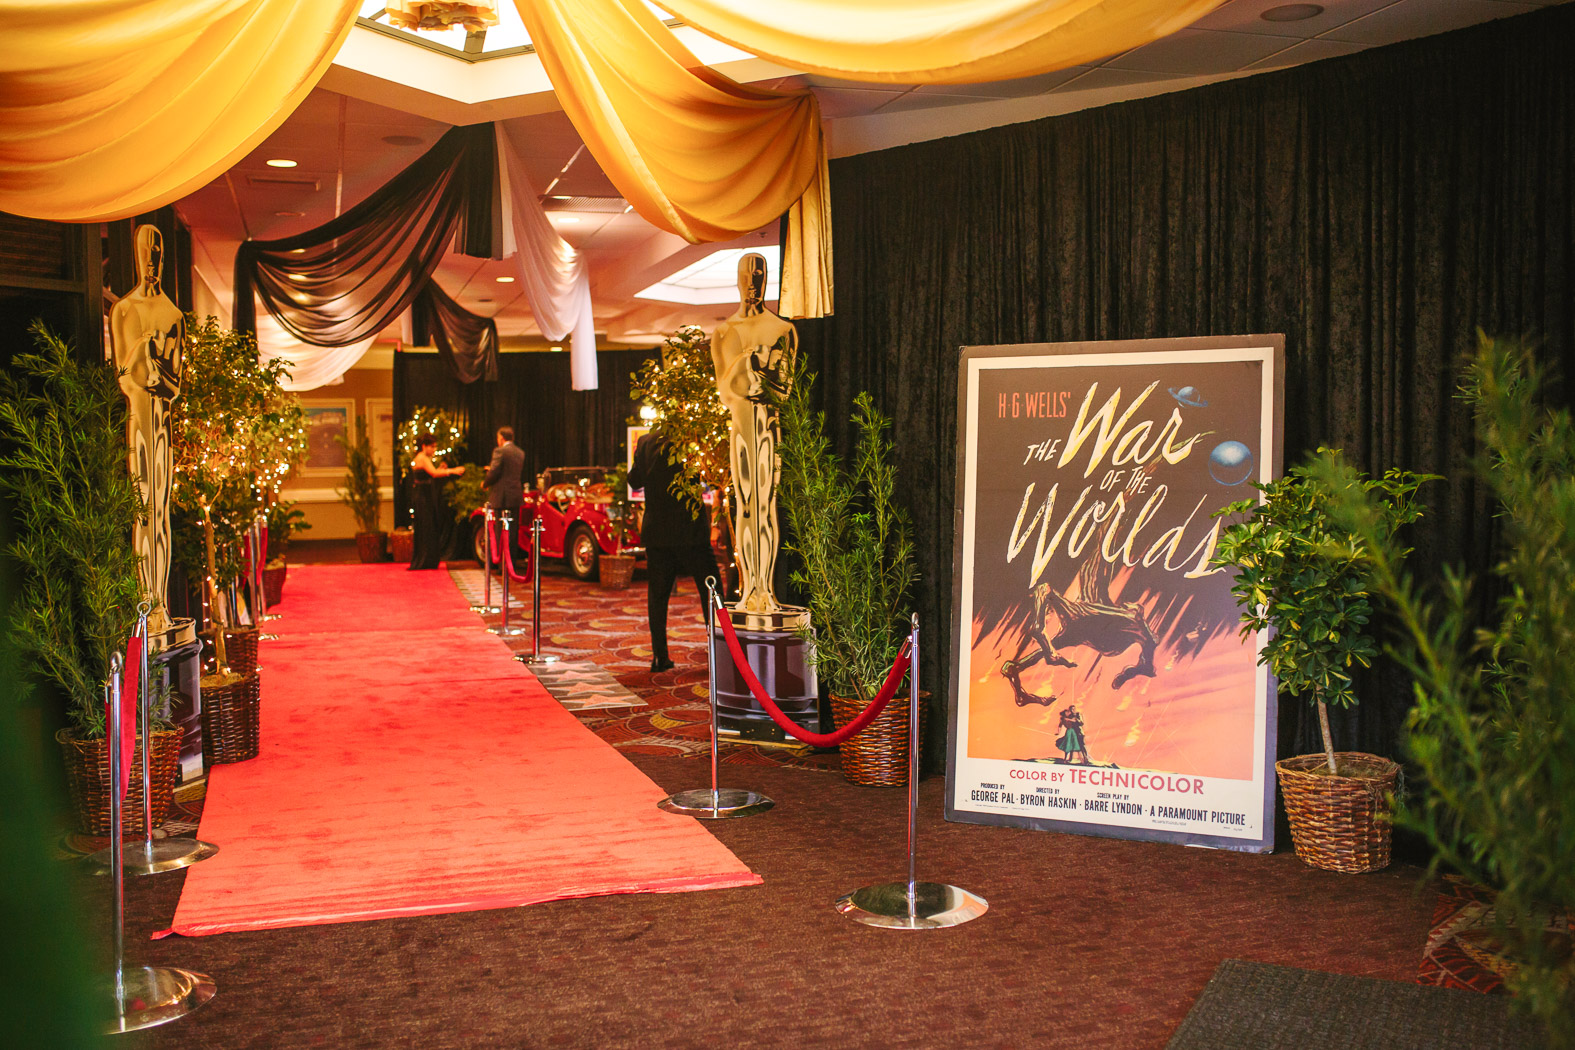 the entrance to an oscar themed event